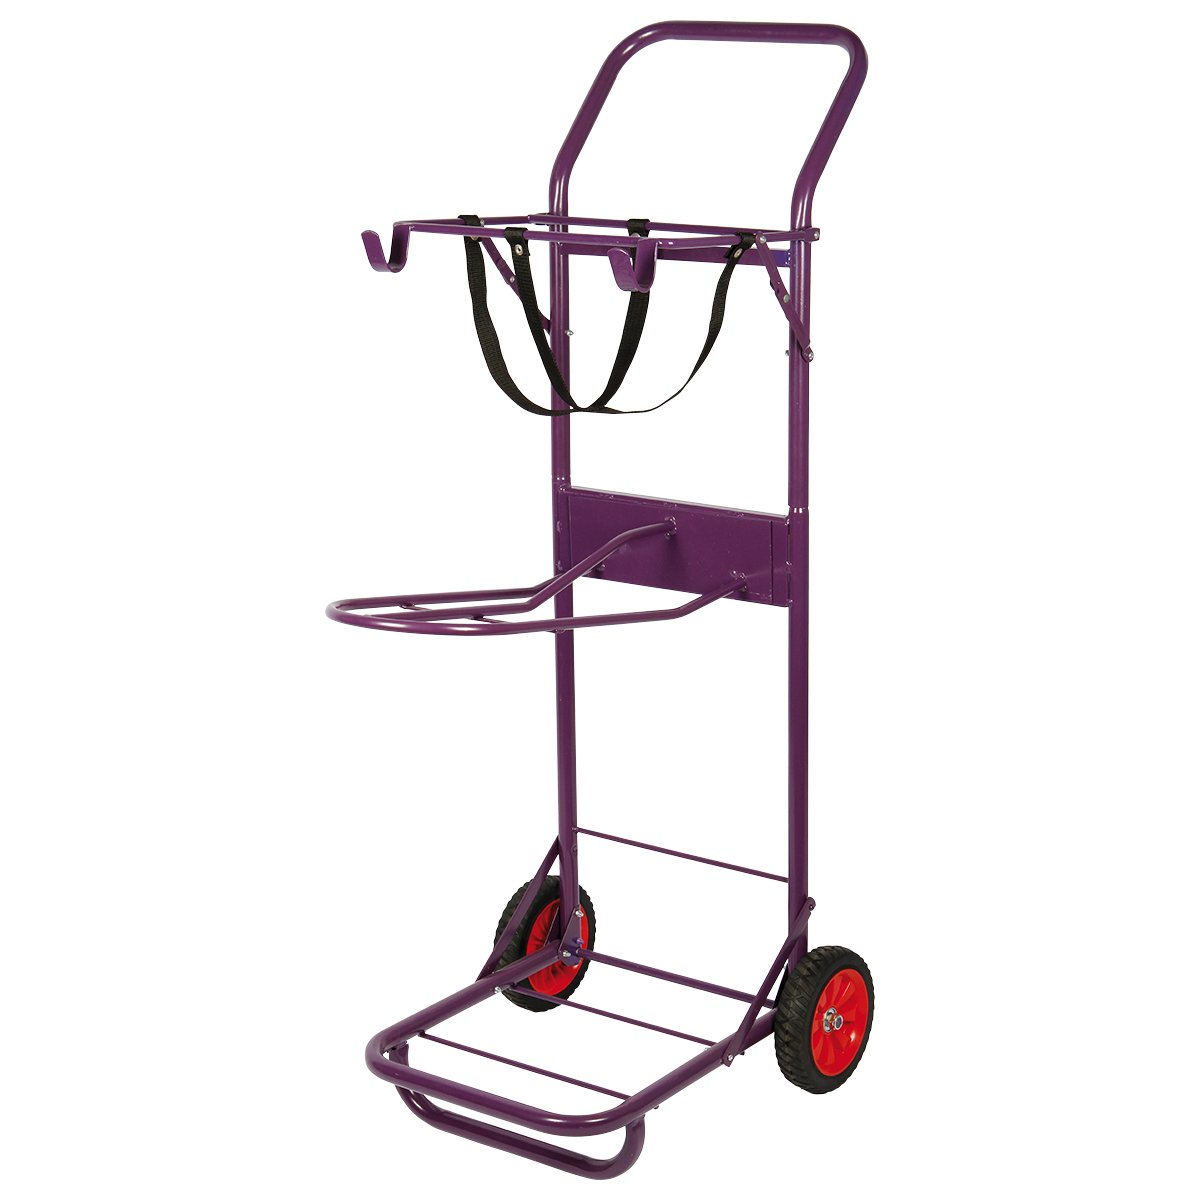 Reining Horse Stall Cart Color Saddle Trolley Colour: Purple Harrys horse